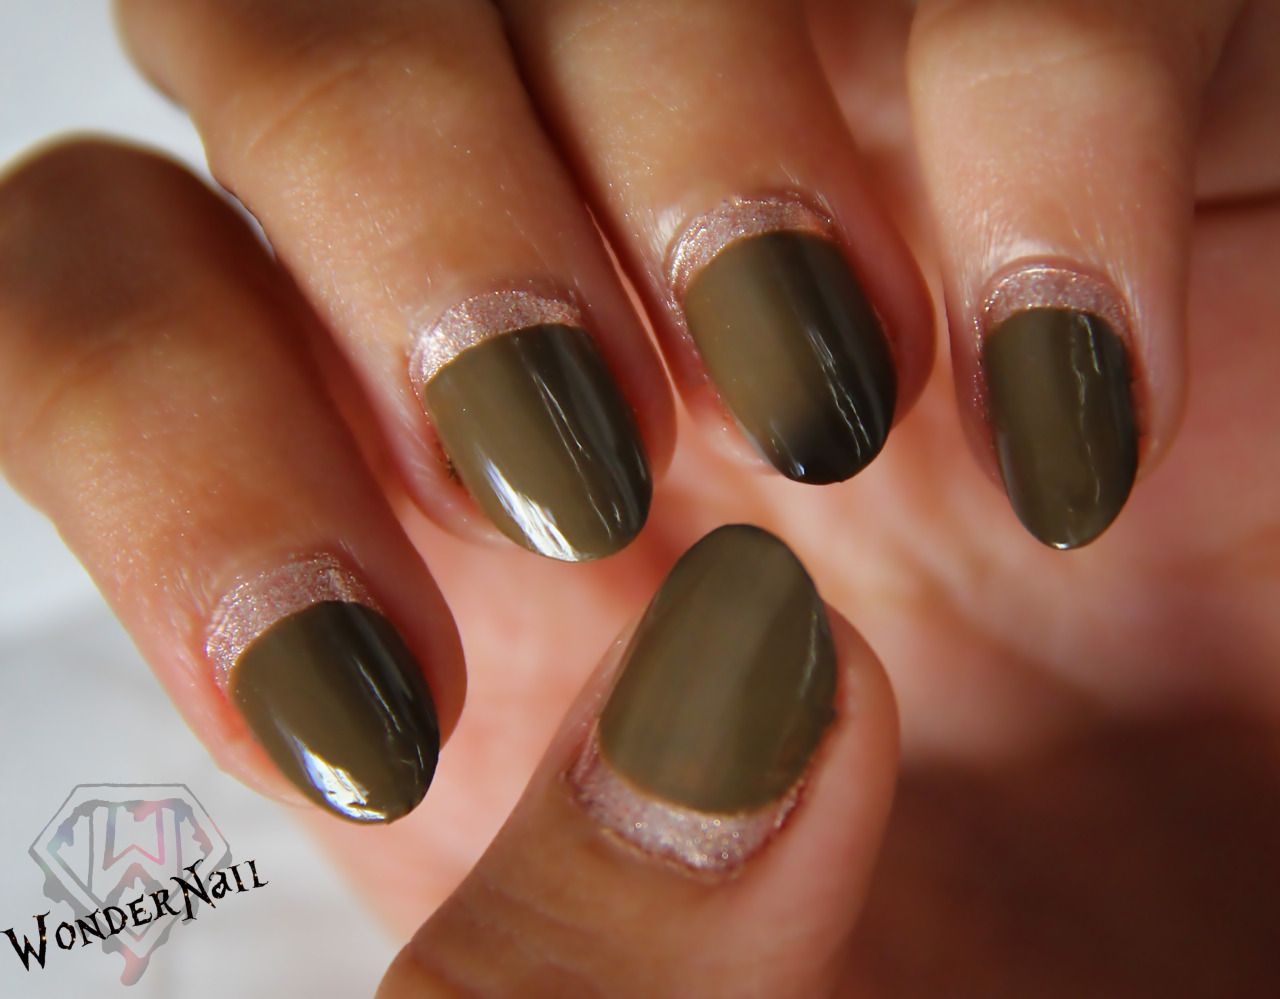 ruffian manicure using OPI a-tuape the space needle and Sephora by OPI chestnuts about you